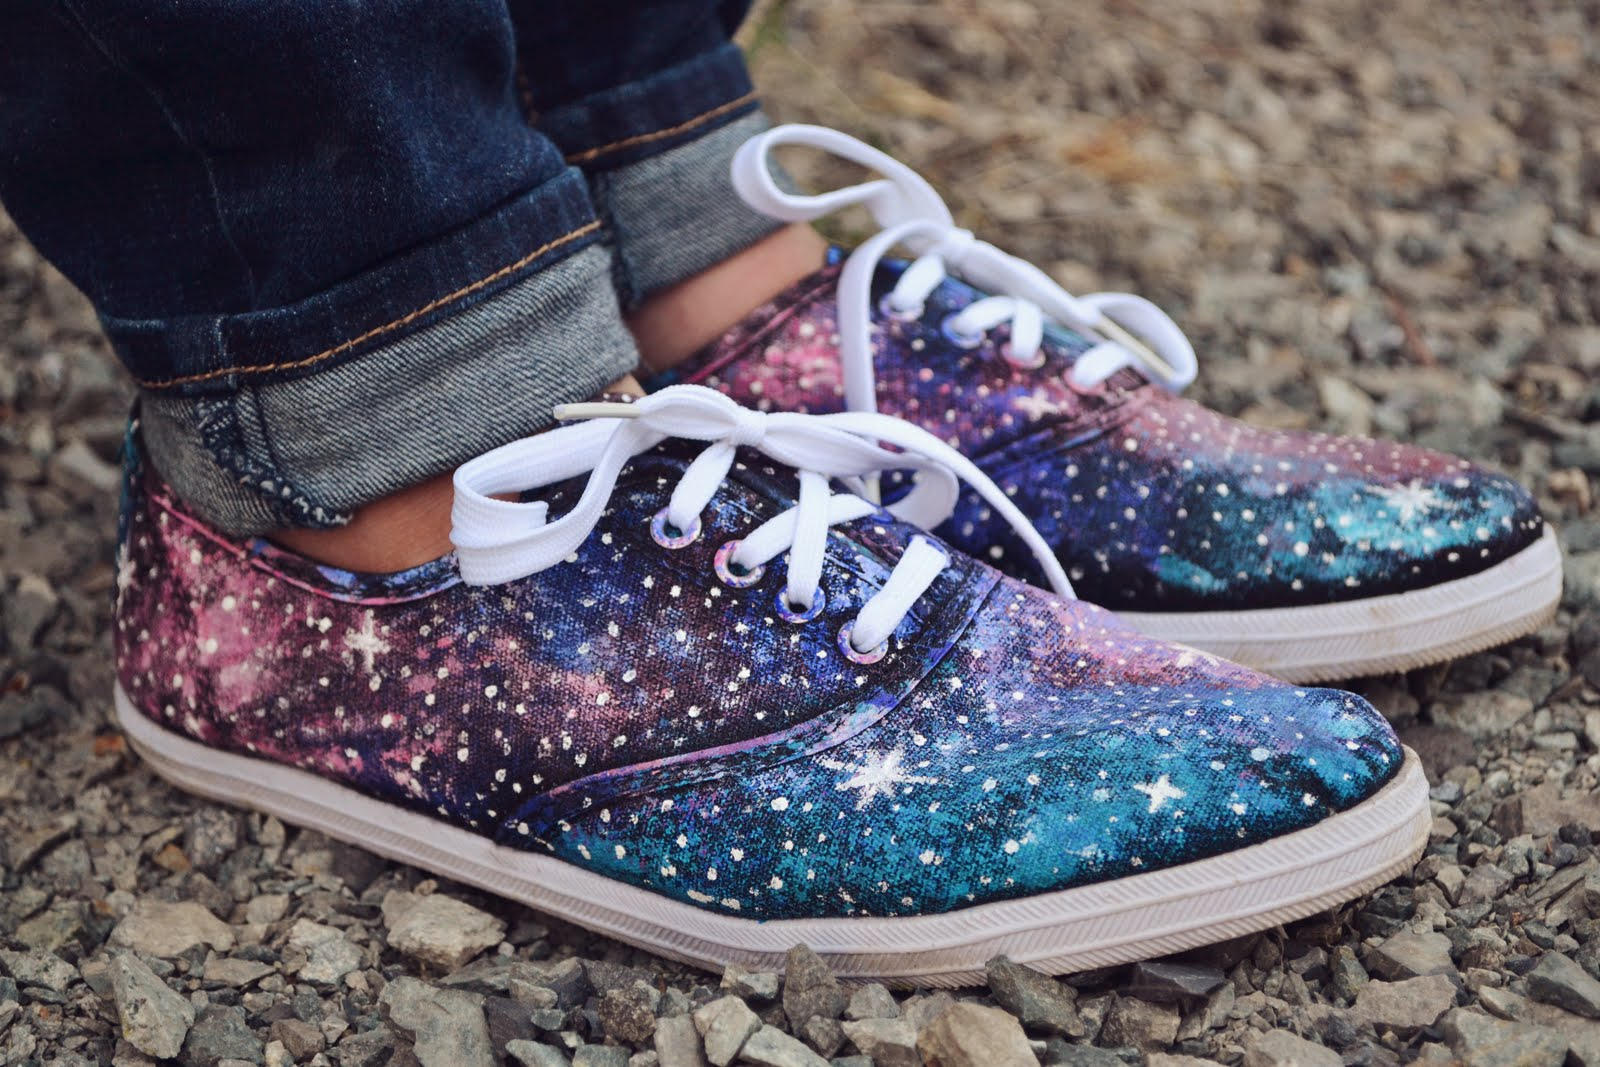 White Galaxy Shoes